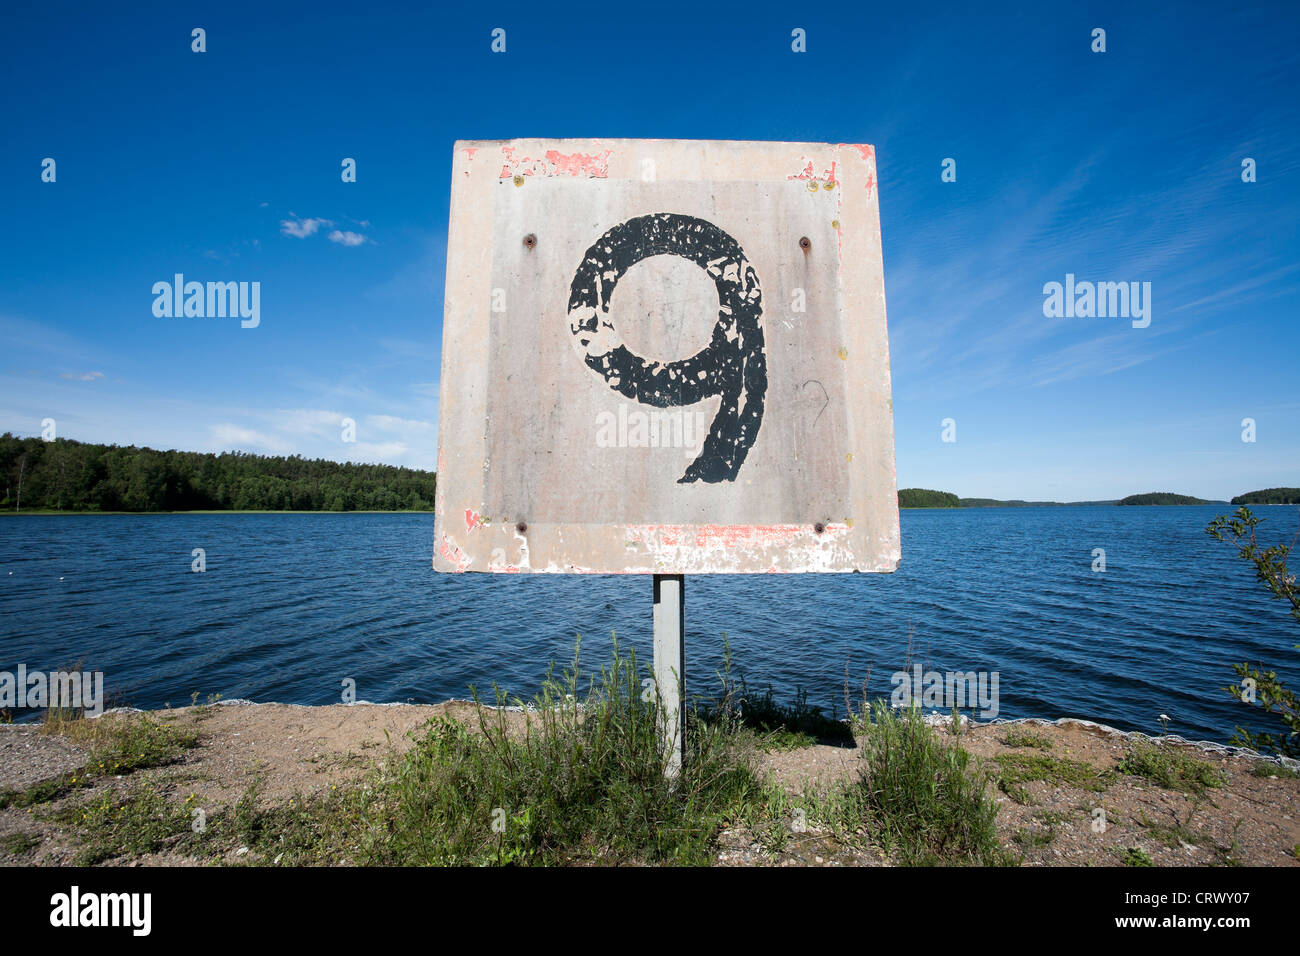 weathered old speed limit sign at harbour - Stock Image